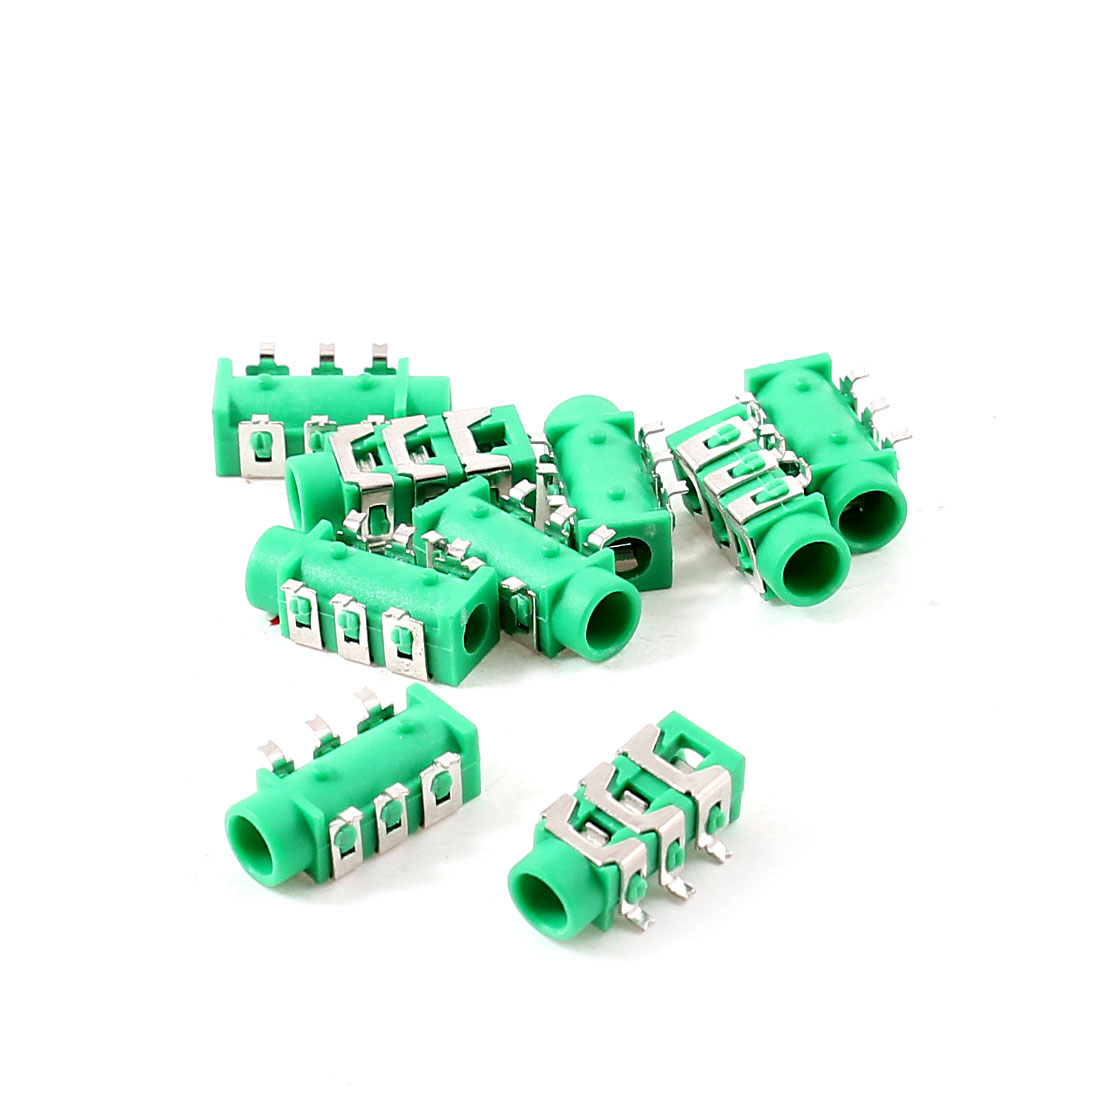 10 Pcs 6 Pins 3.5mm SMD Stereo Headphone Socket PCB Mount Connector Green